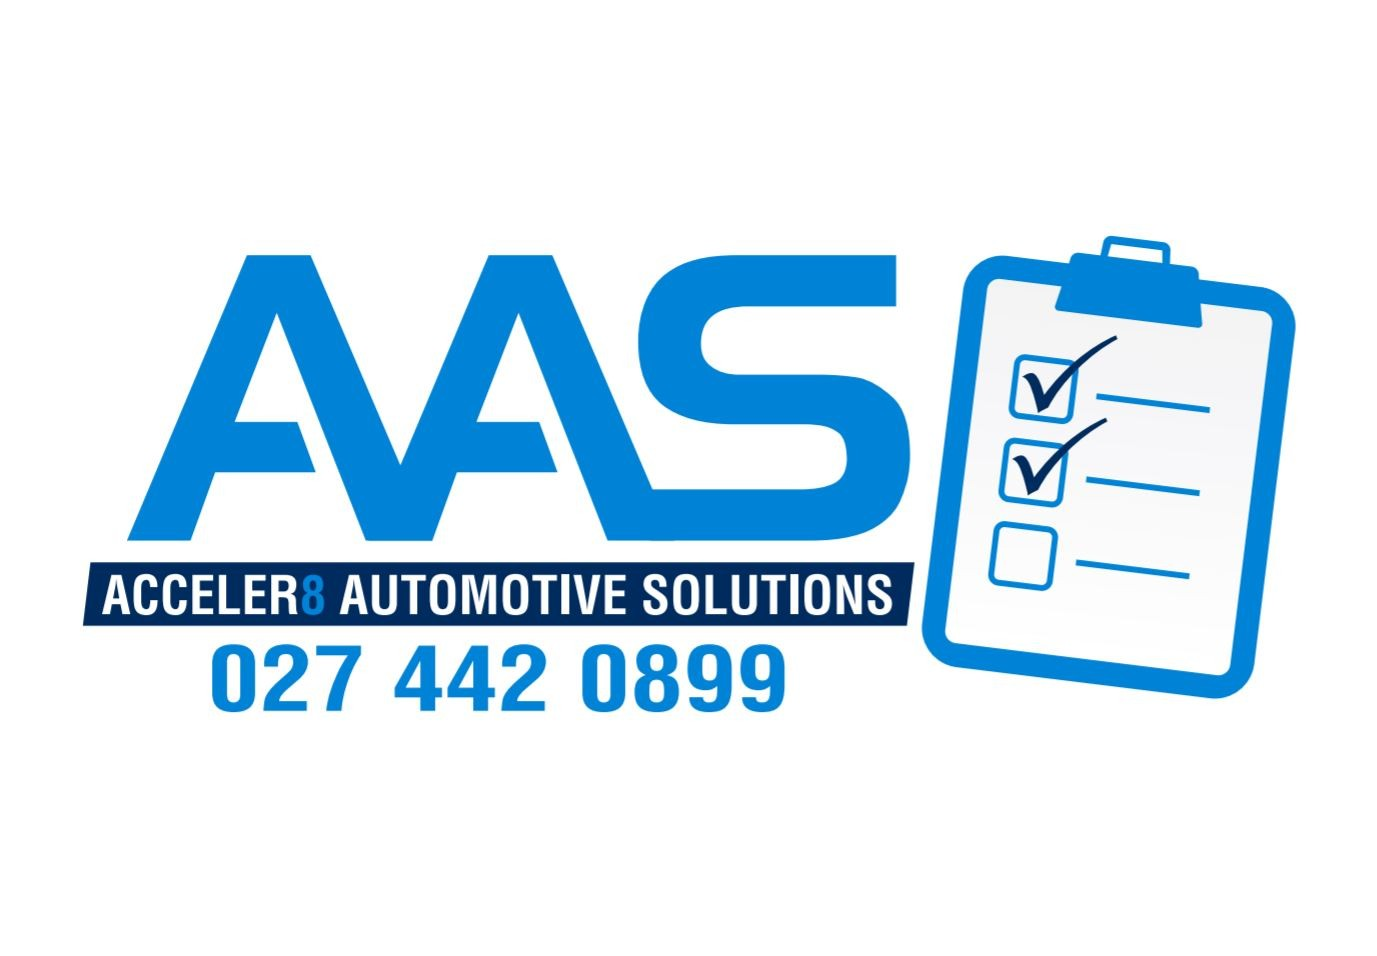 Acceler8 Automotive Solutions (A.A.S)